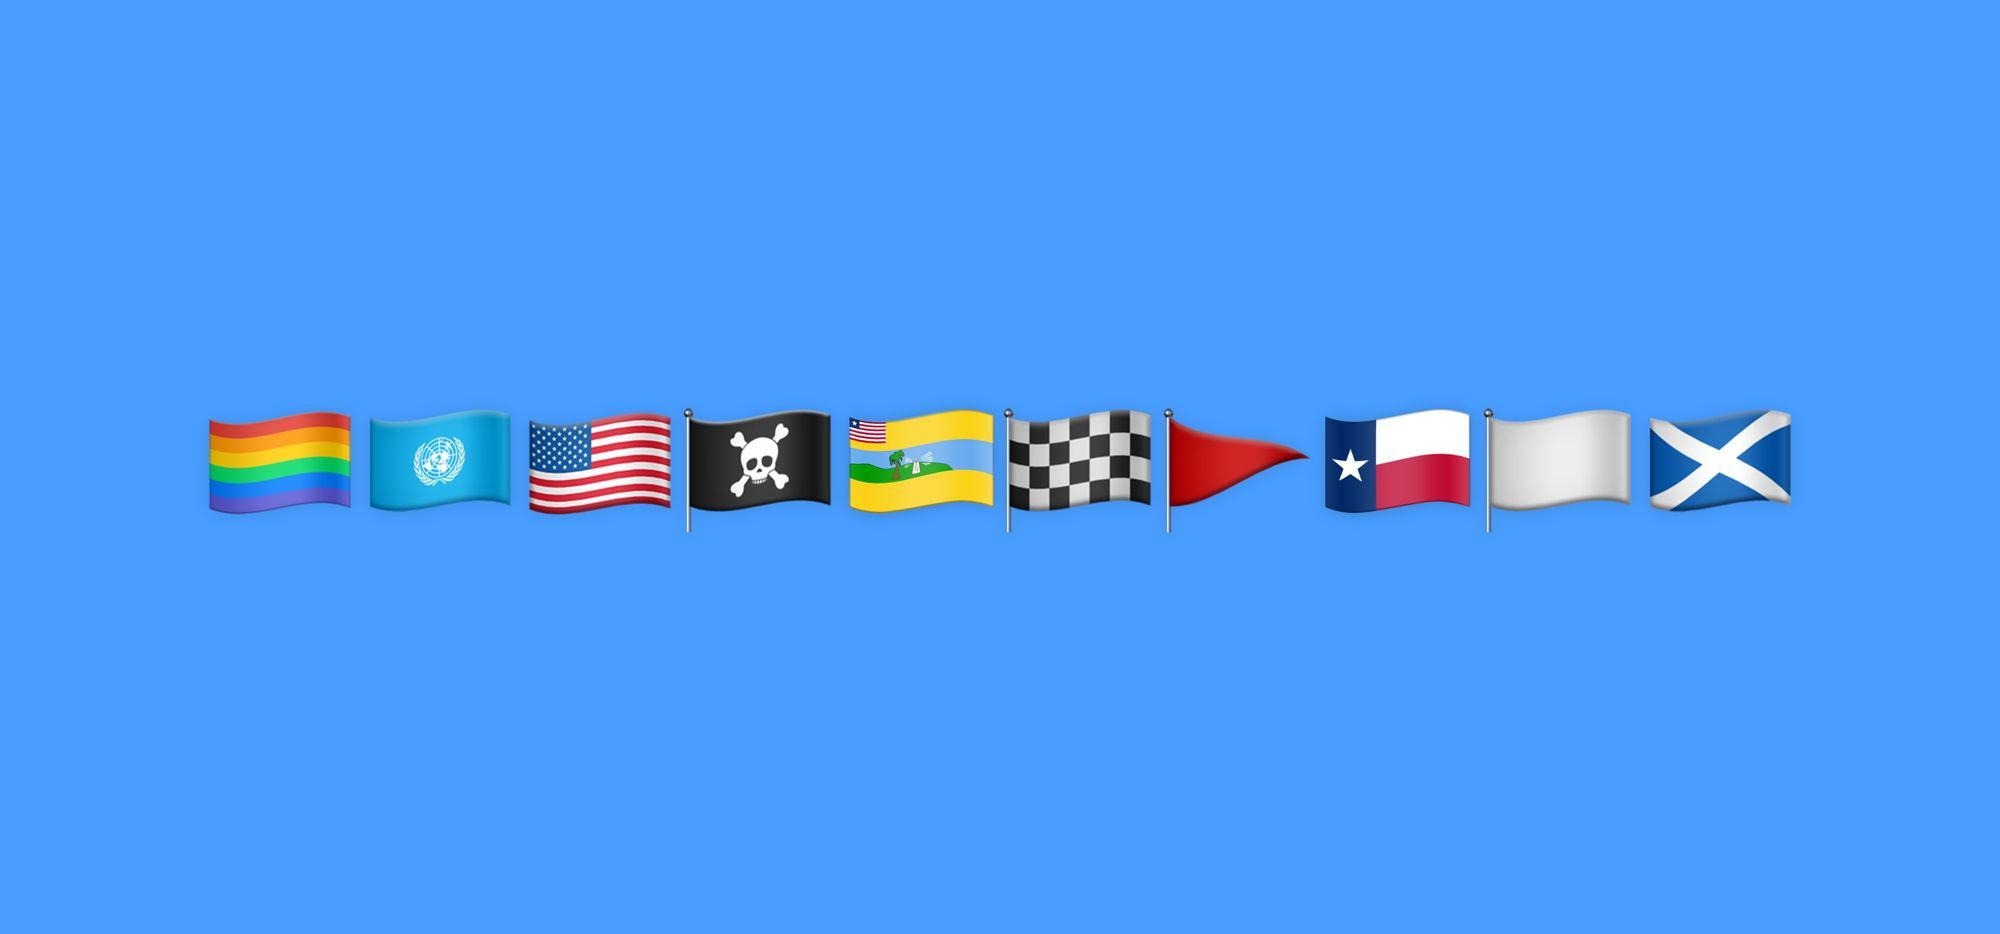 Emoji Flags Explained